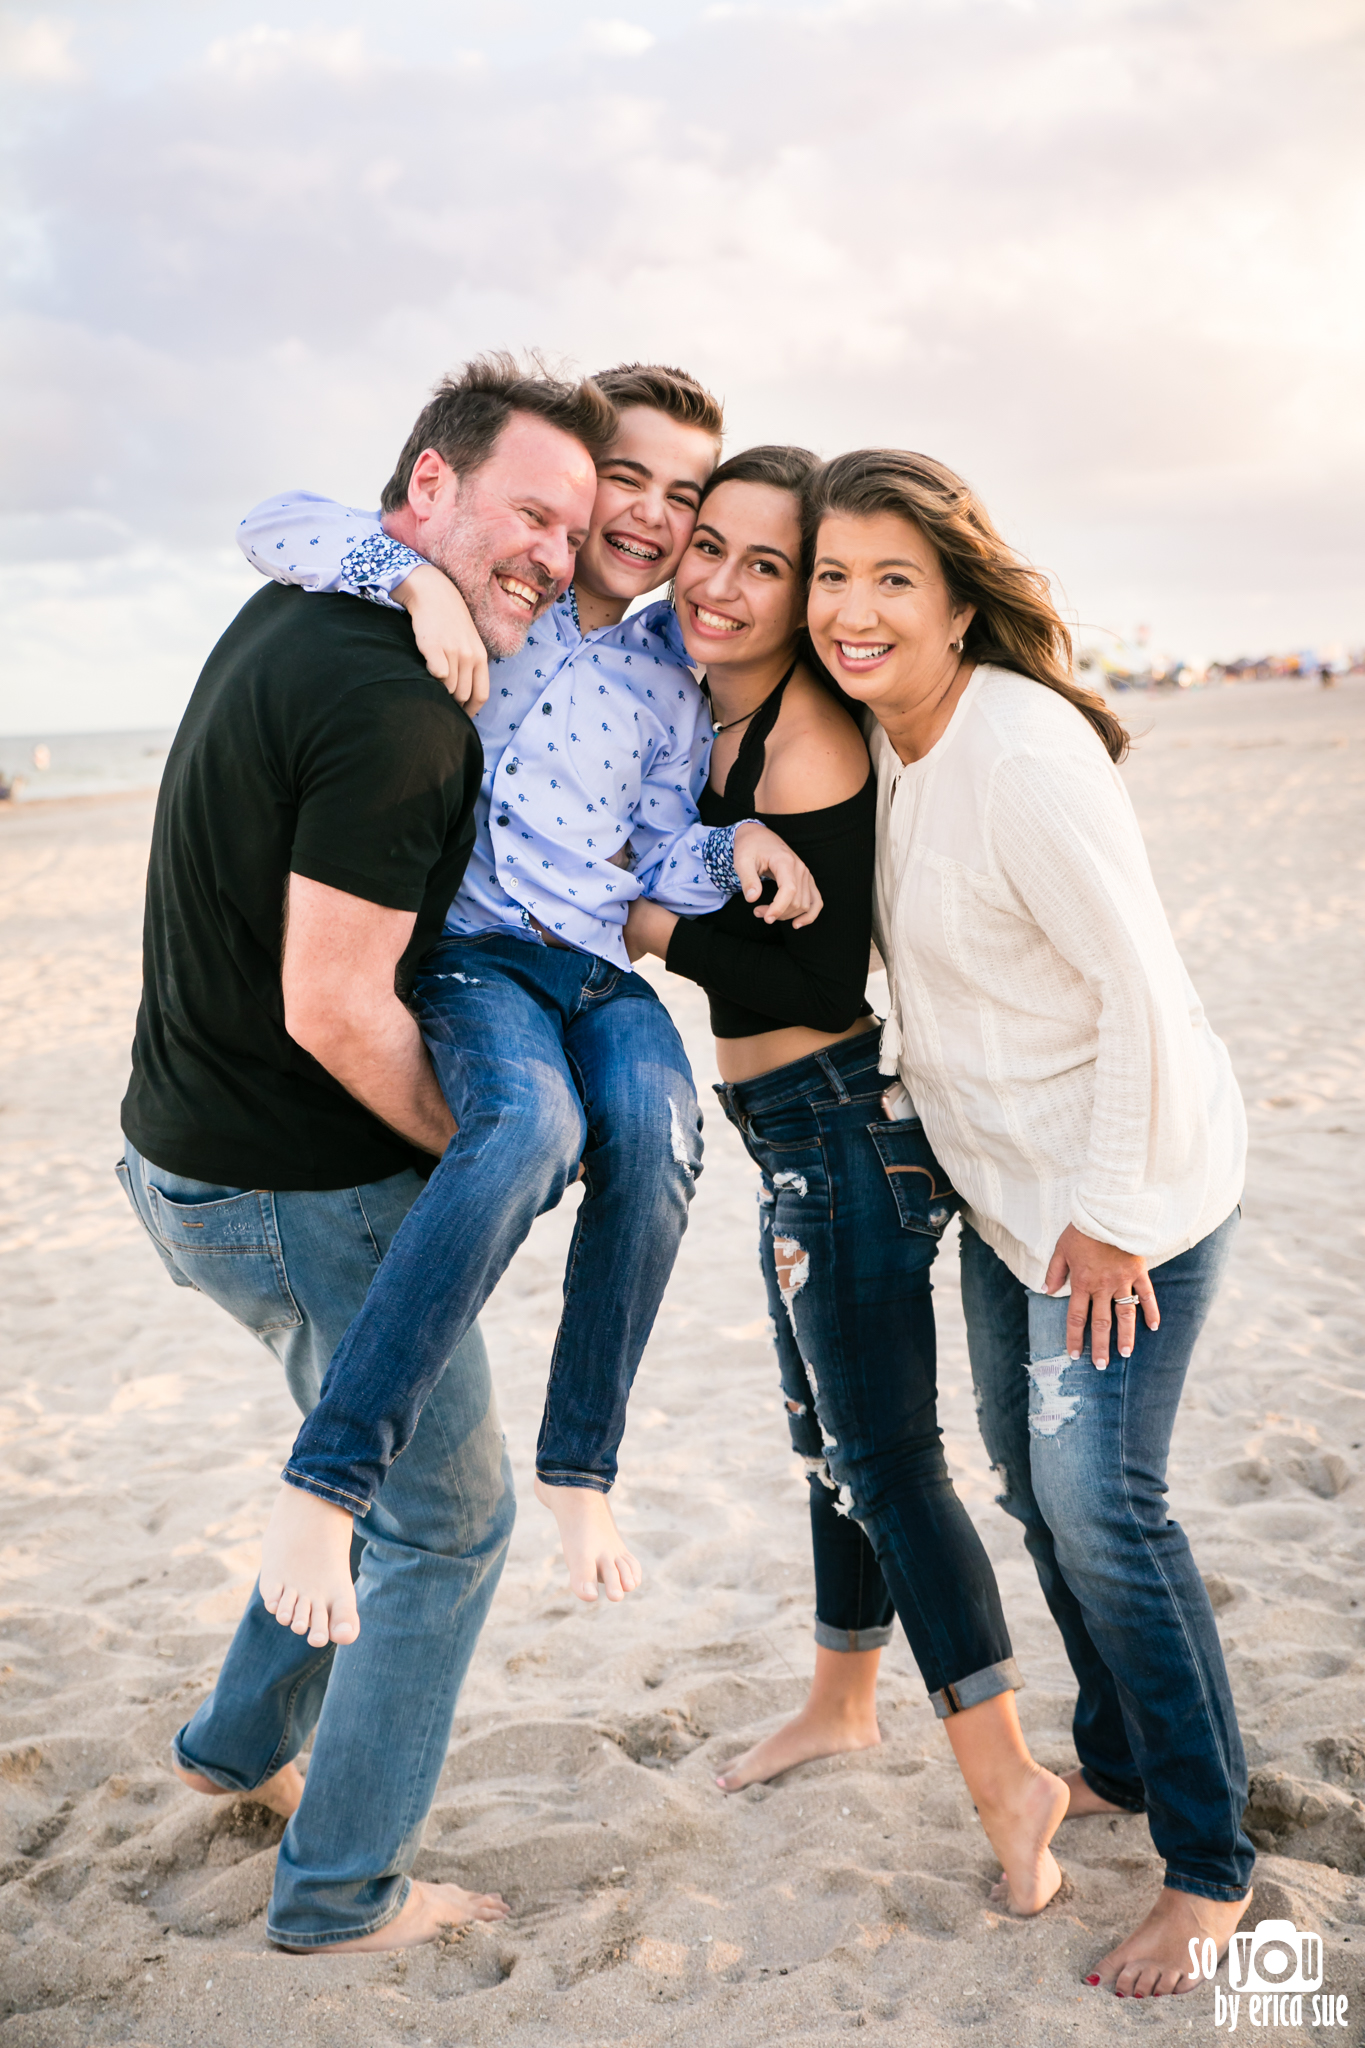 bar-mitzvay-pre-shoot-family-photography-so-you-by-erica-sue-ft-lauderdale-fl-florida-beach-9106.jpg